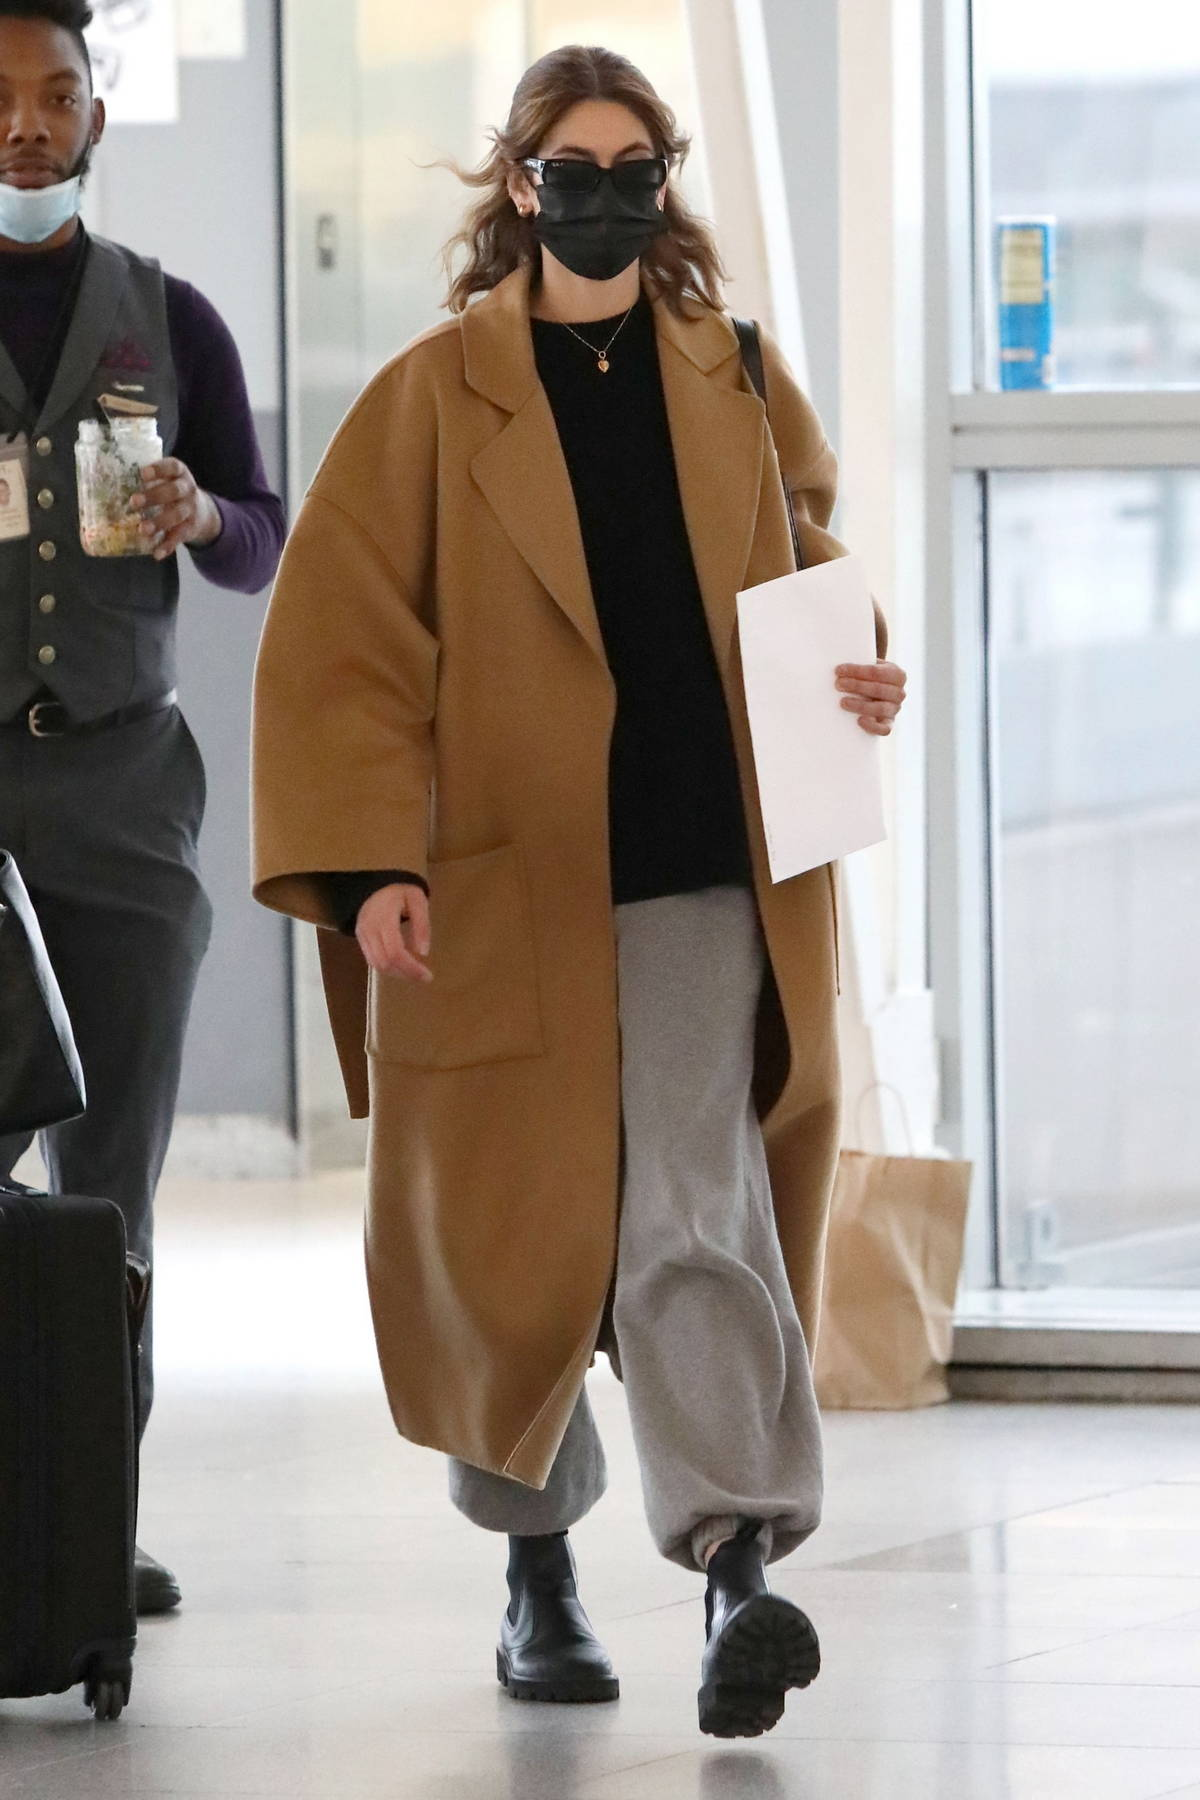 Kaia Gerber bundles up in a brown trench coat as she arrives at JFK Airport for a flight out of New York